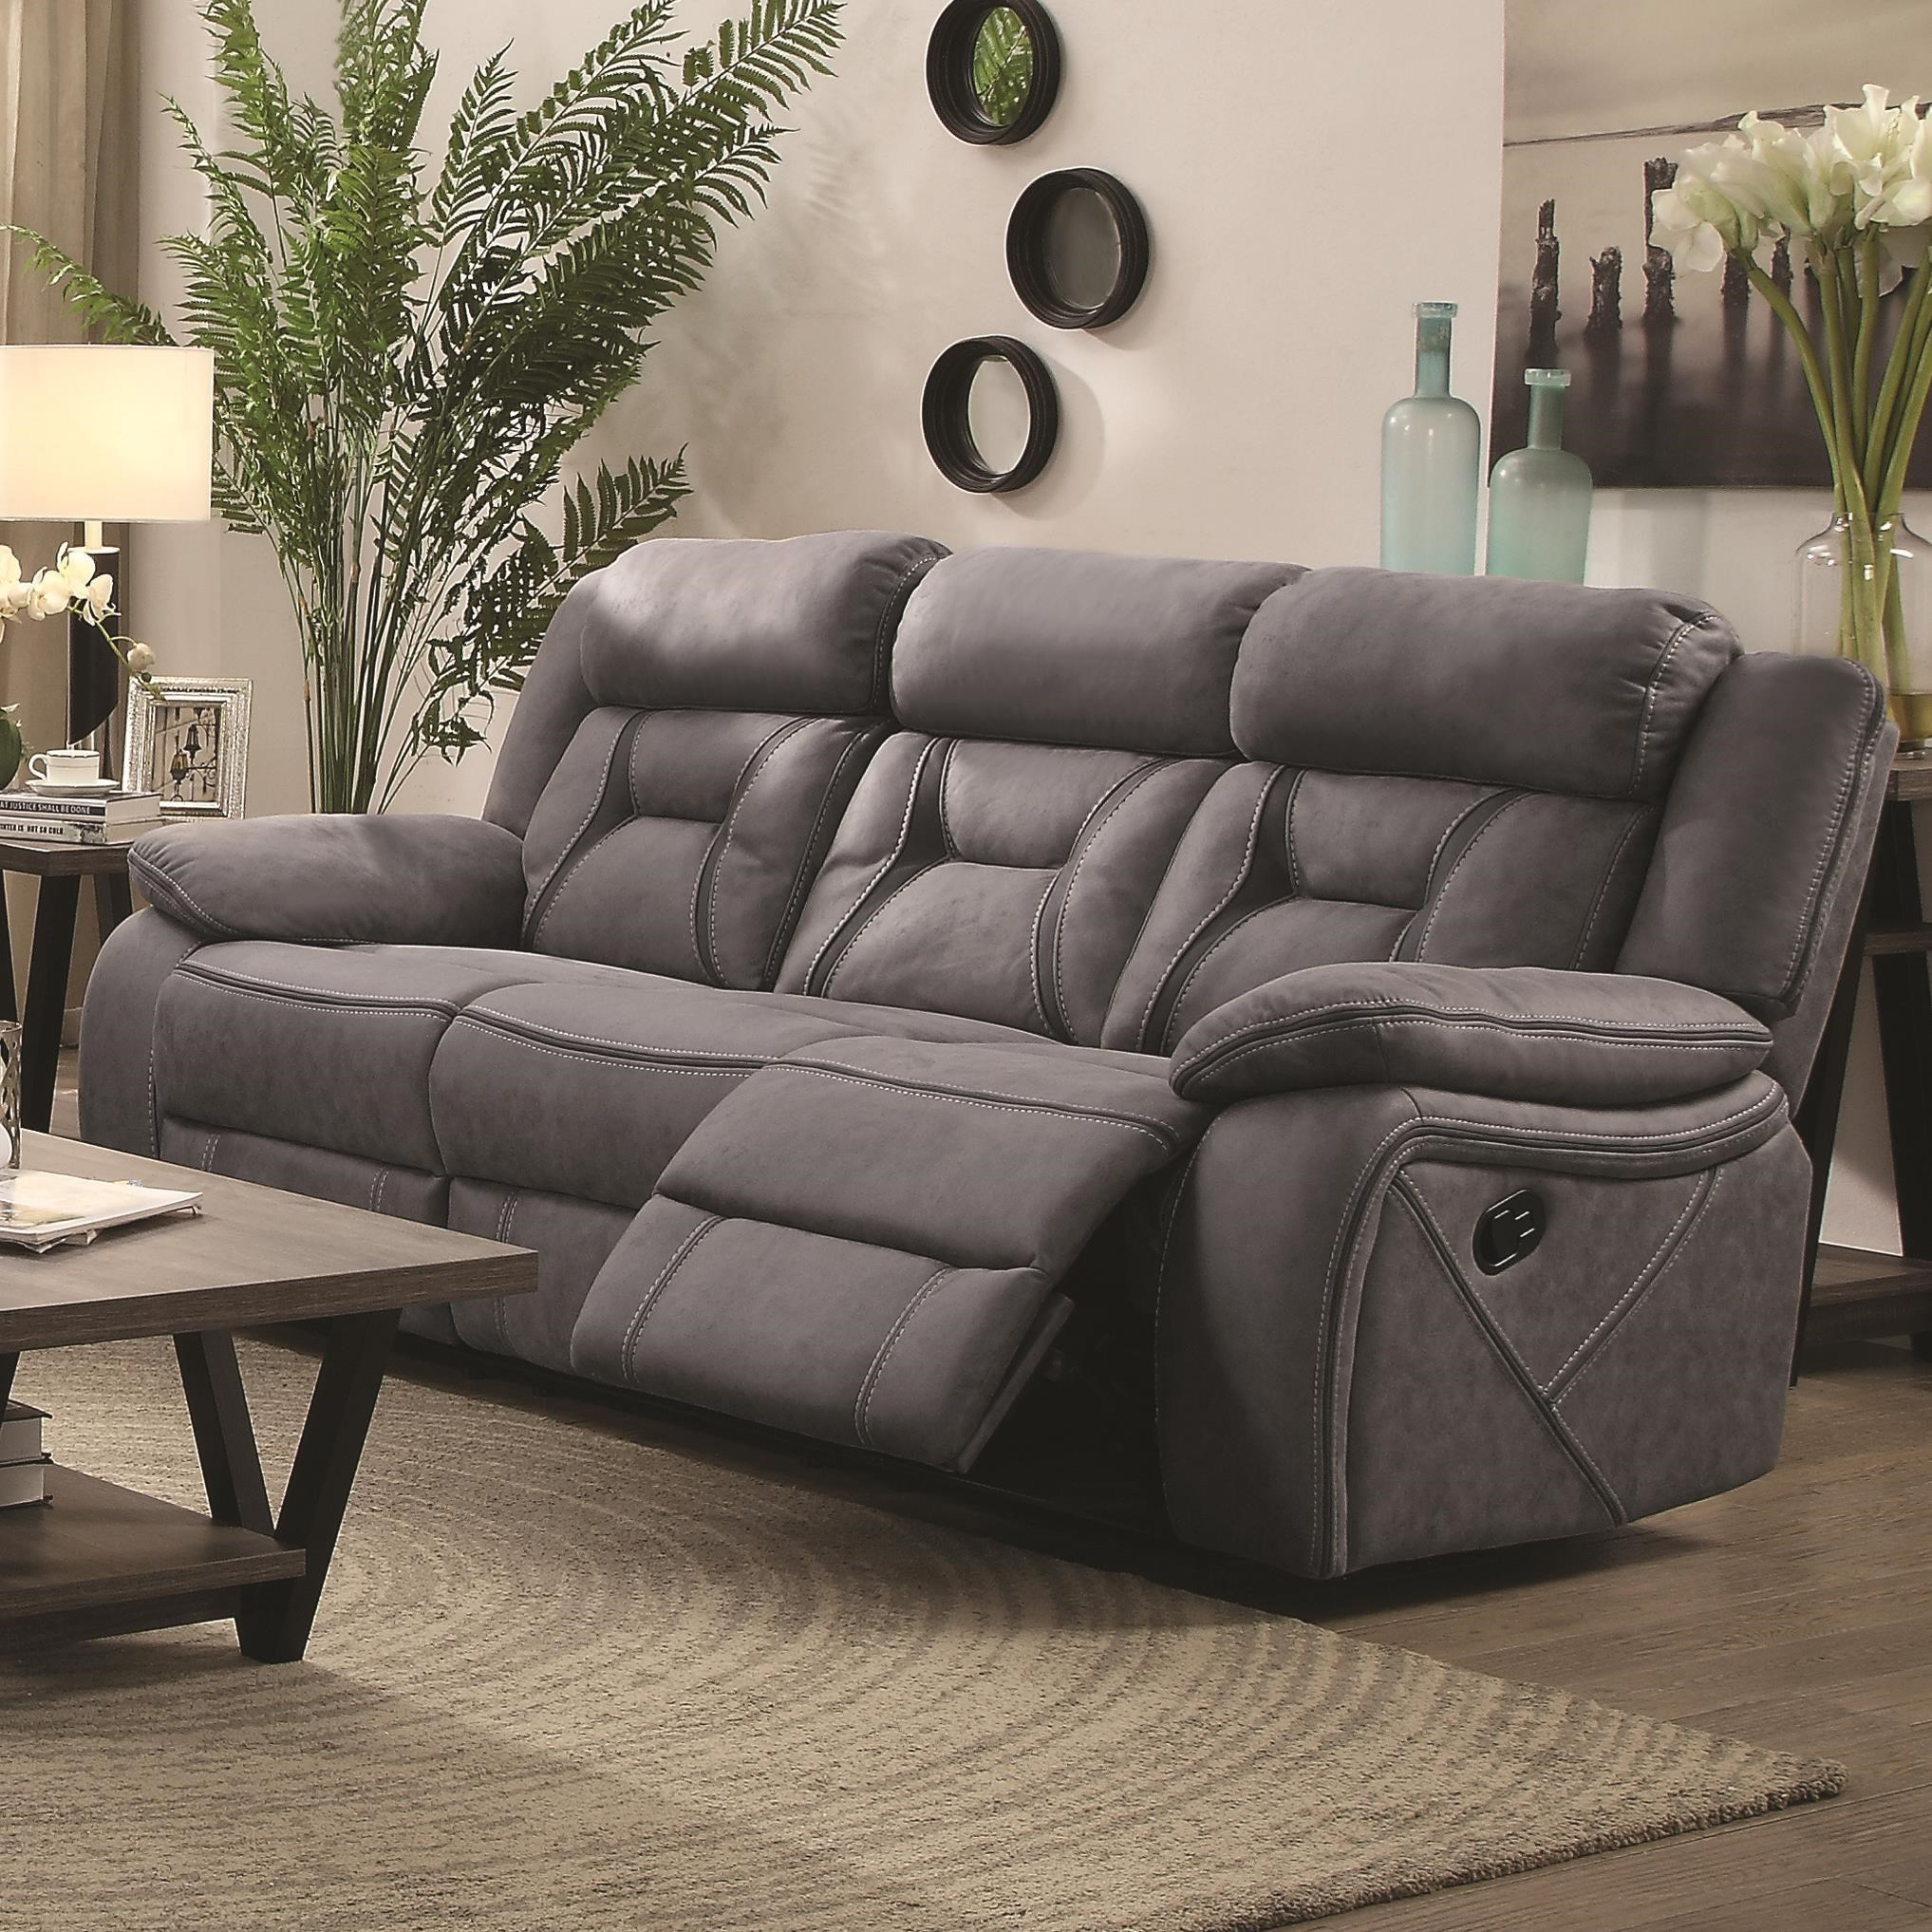 Sofa For Sale Houston Houston Casual Pillow Padded Reclining Sofa With Contrast Stitching